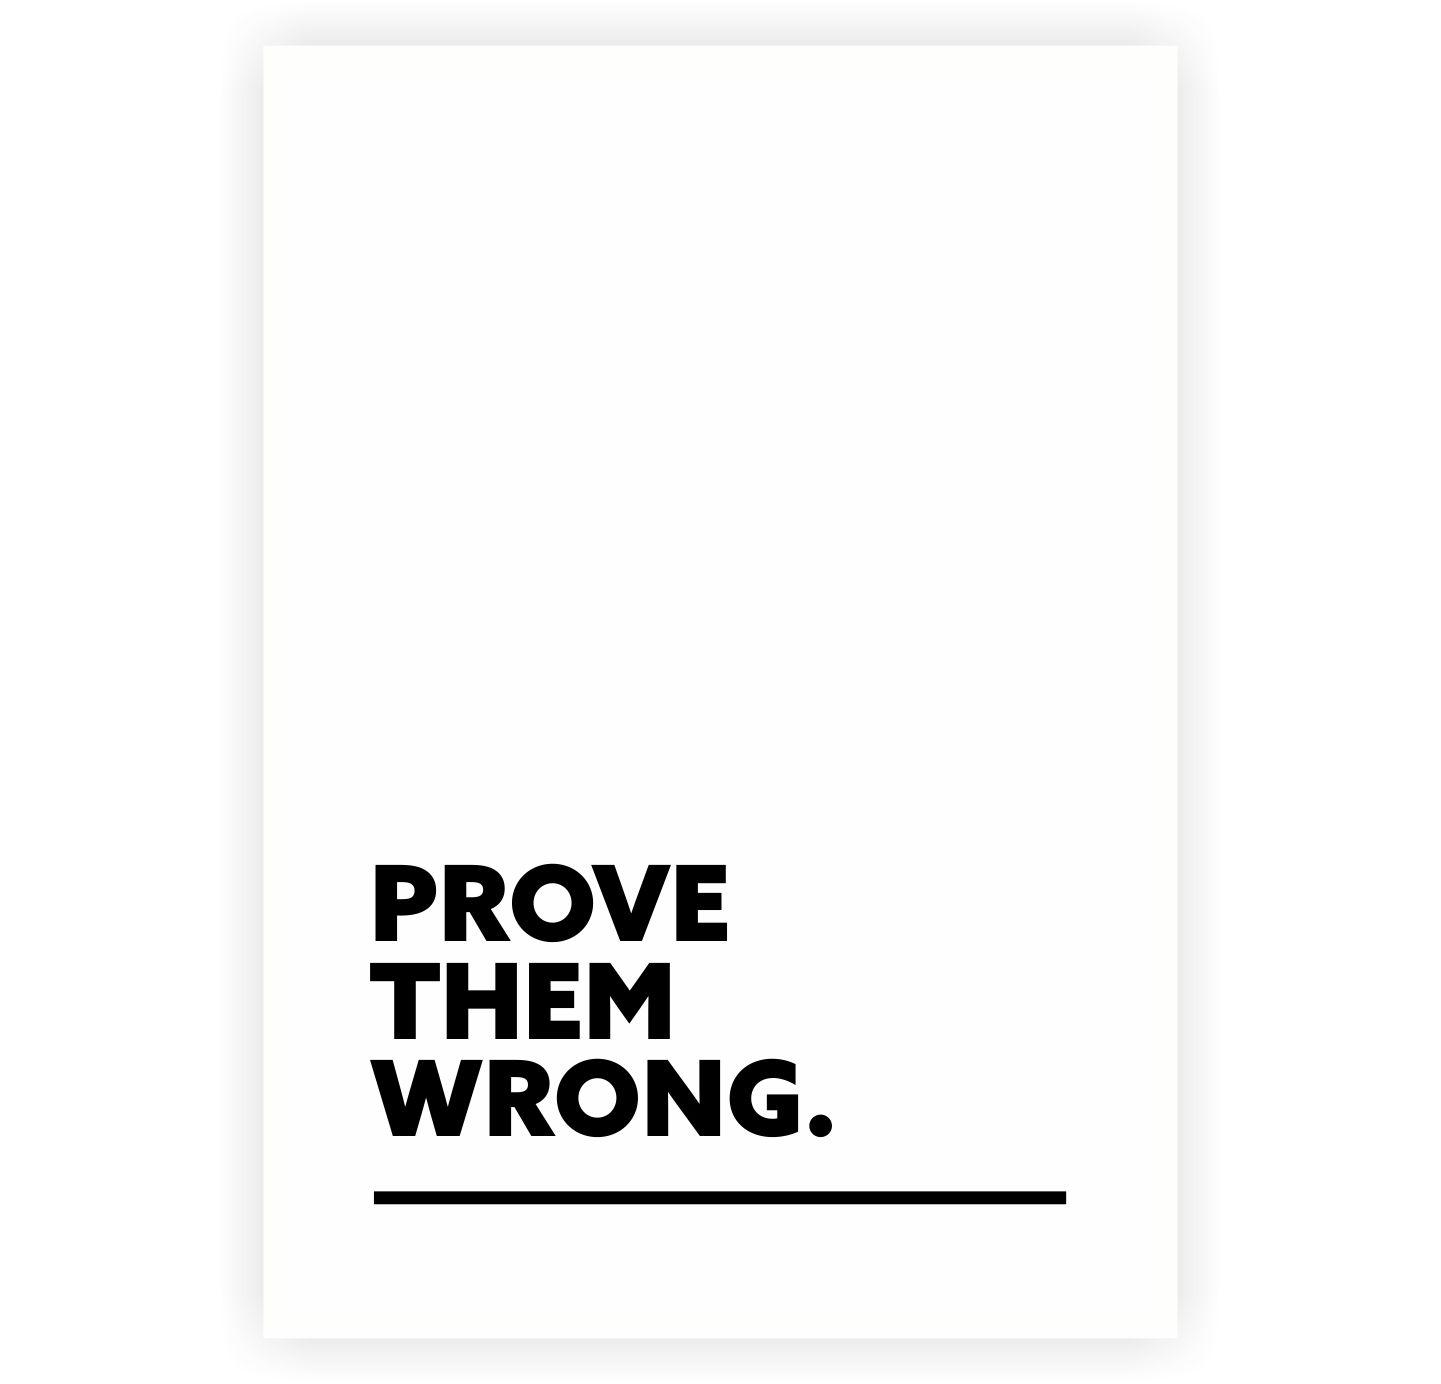 Prove Them Wrong Quotes Pictures To Pin